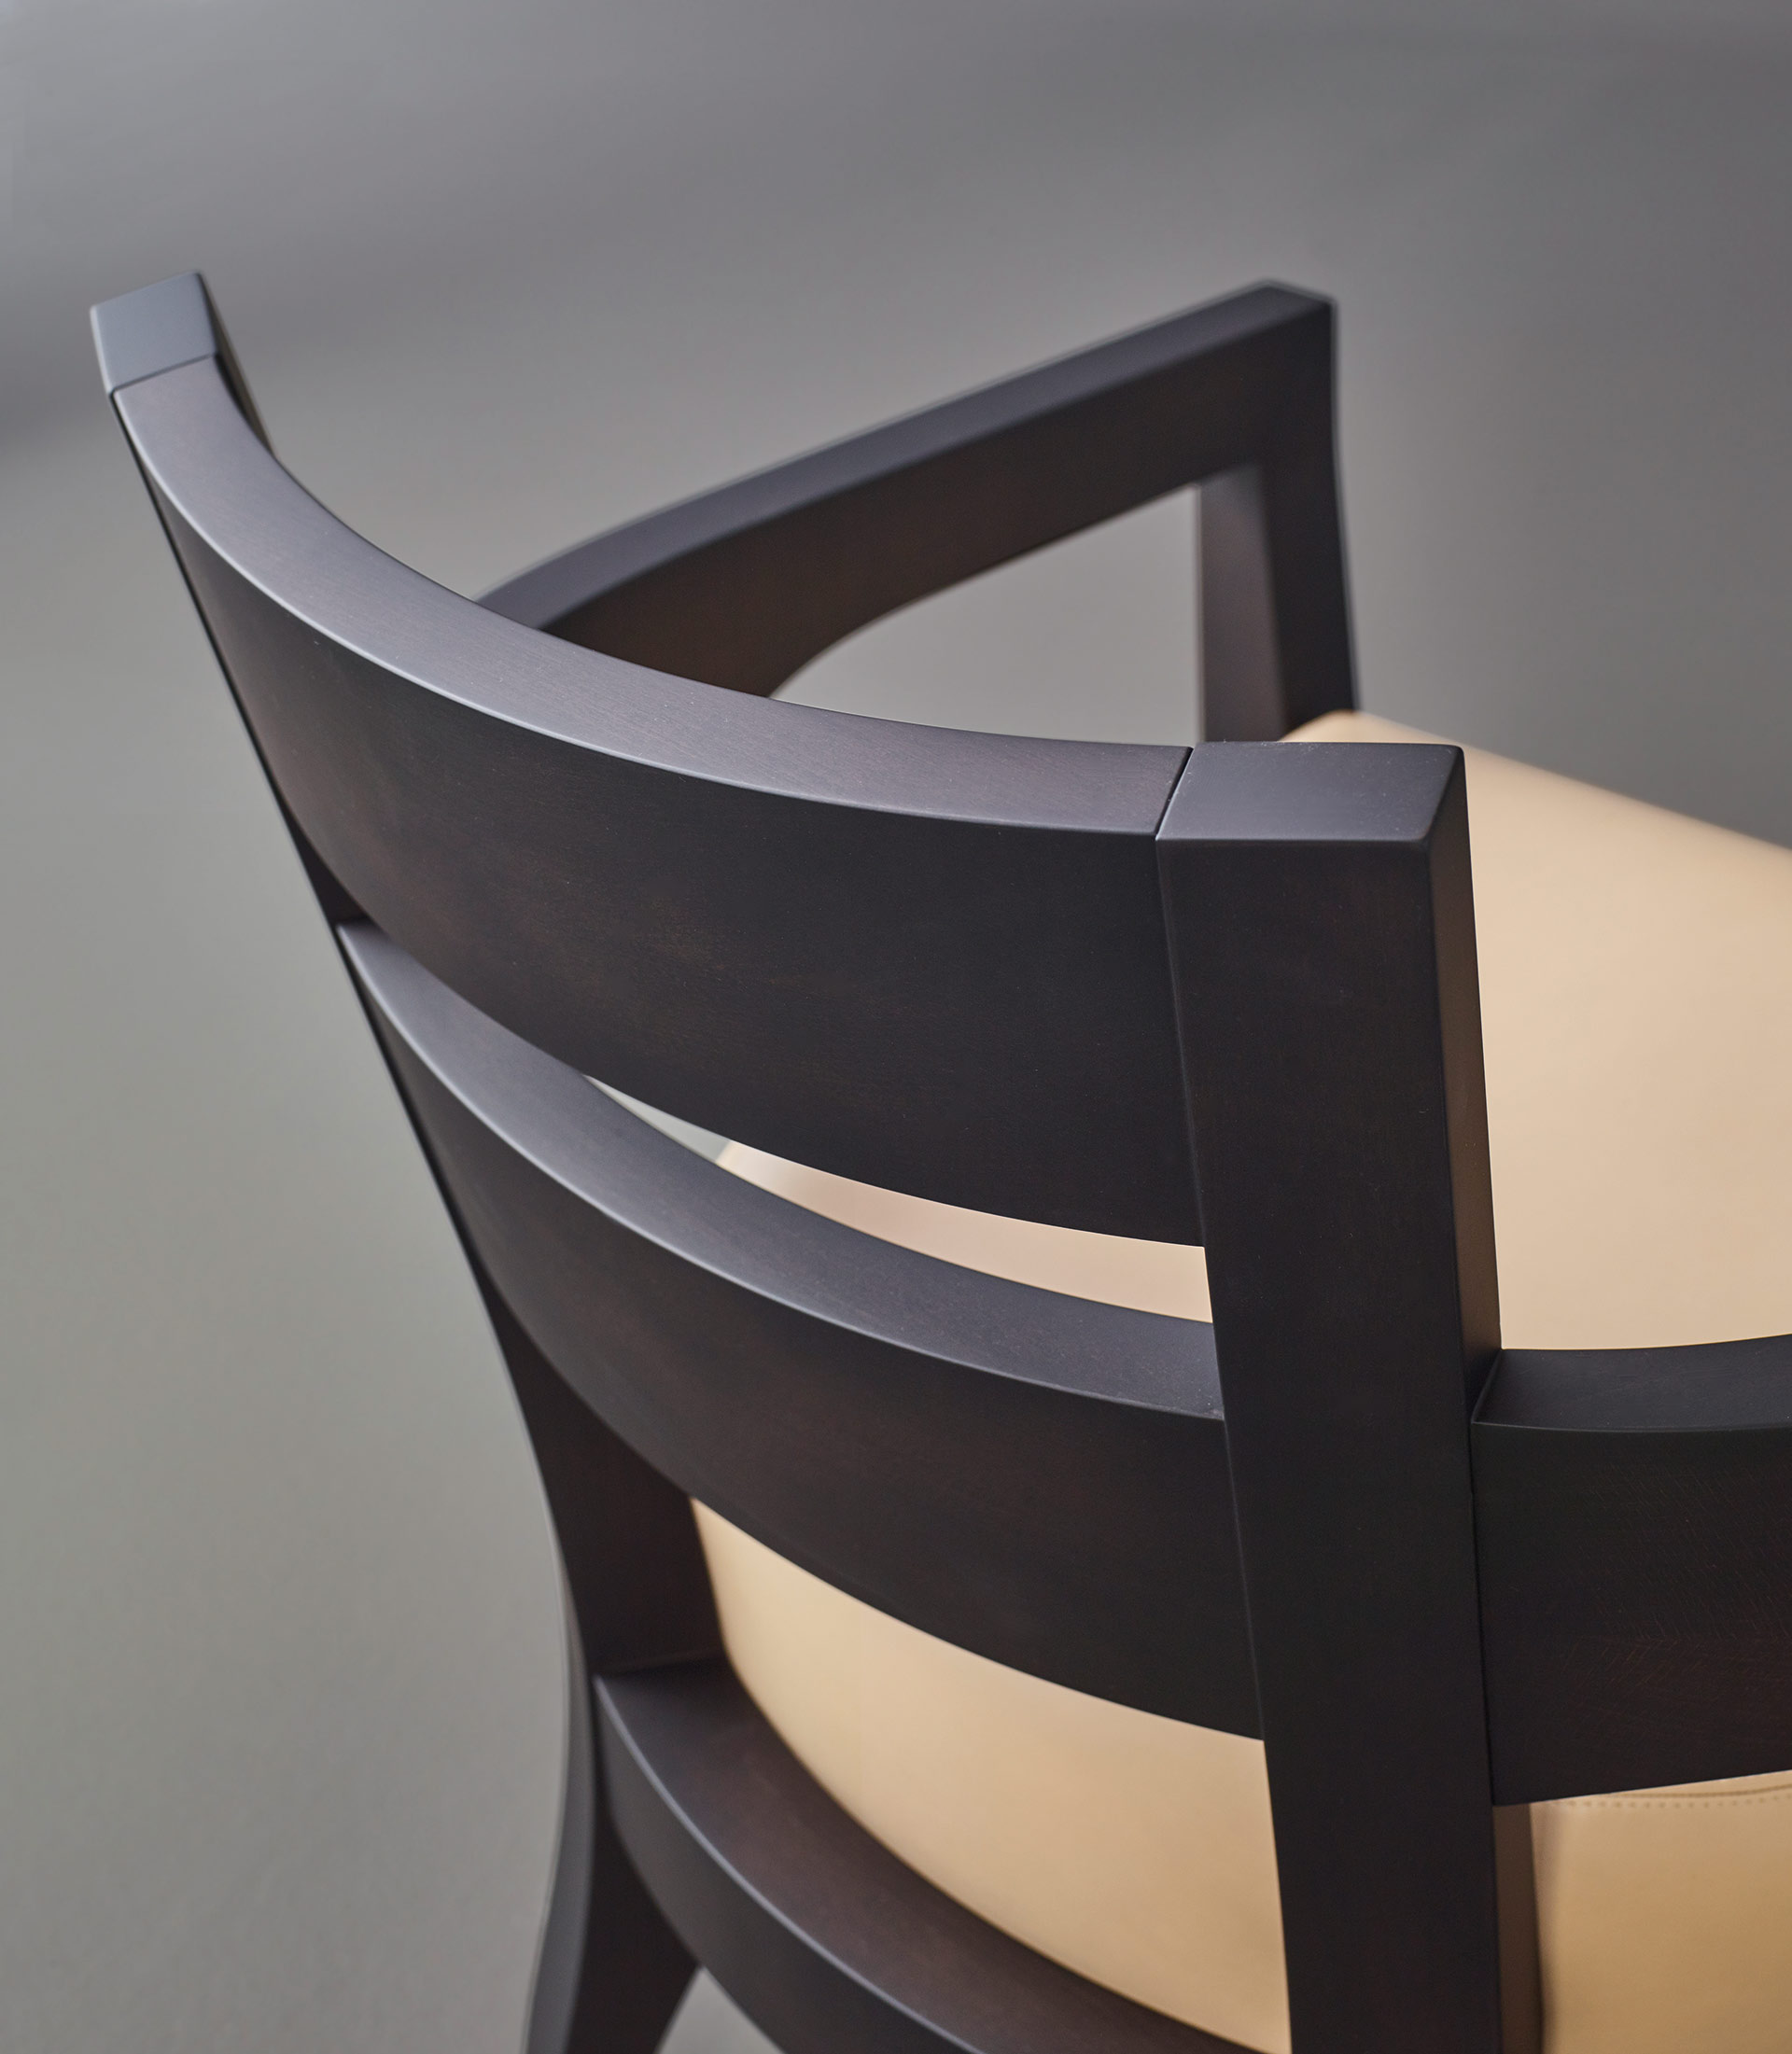 Backrest detail of Africa, a wooden armchair covered in fabric or leather, from Promemoria's catalogue | Promemoria